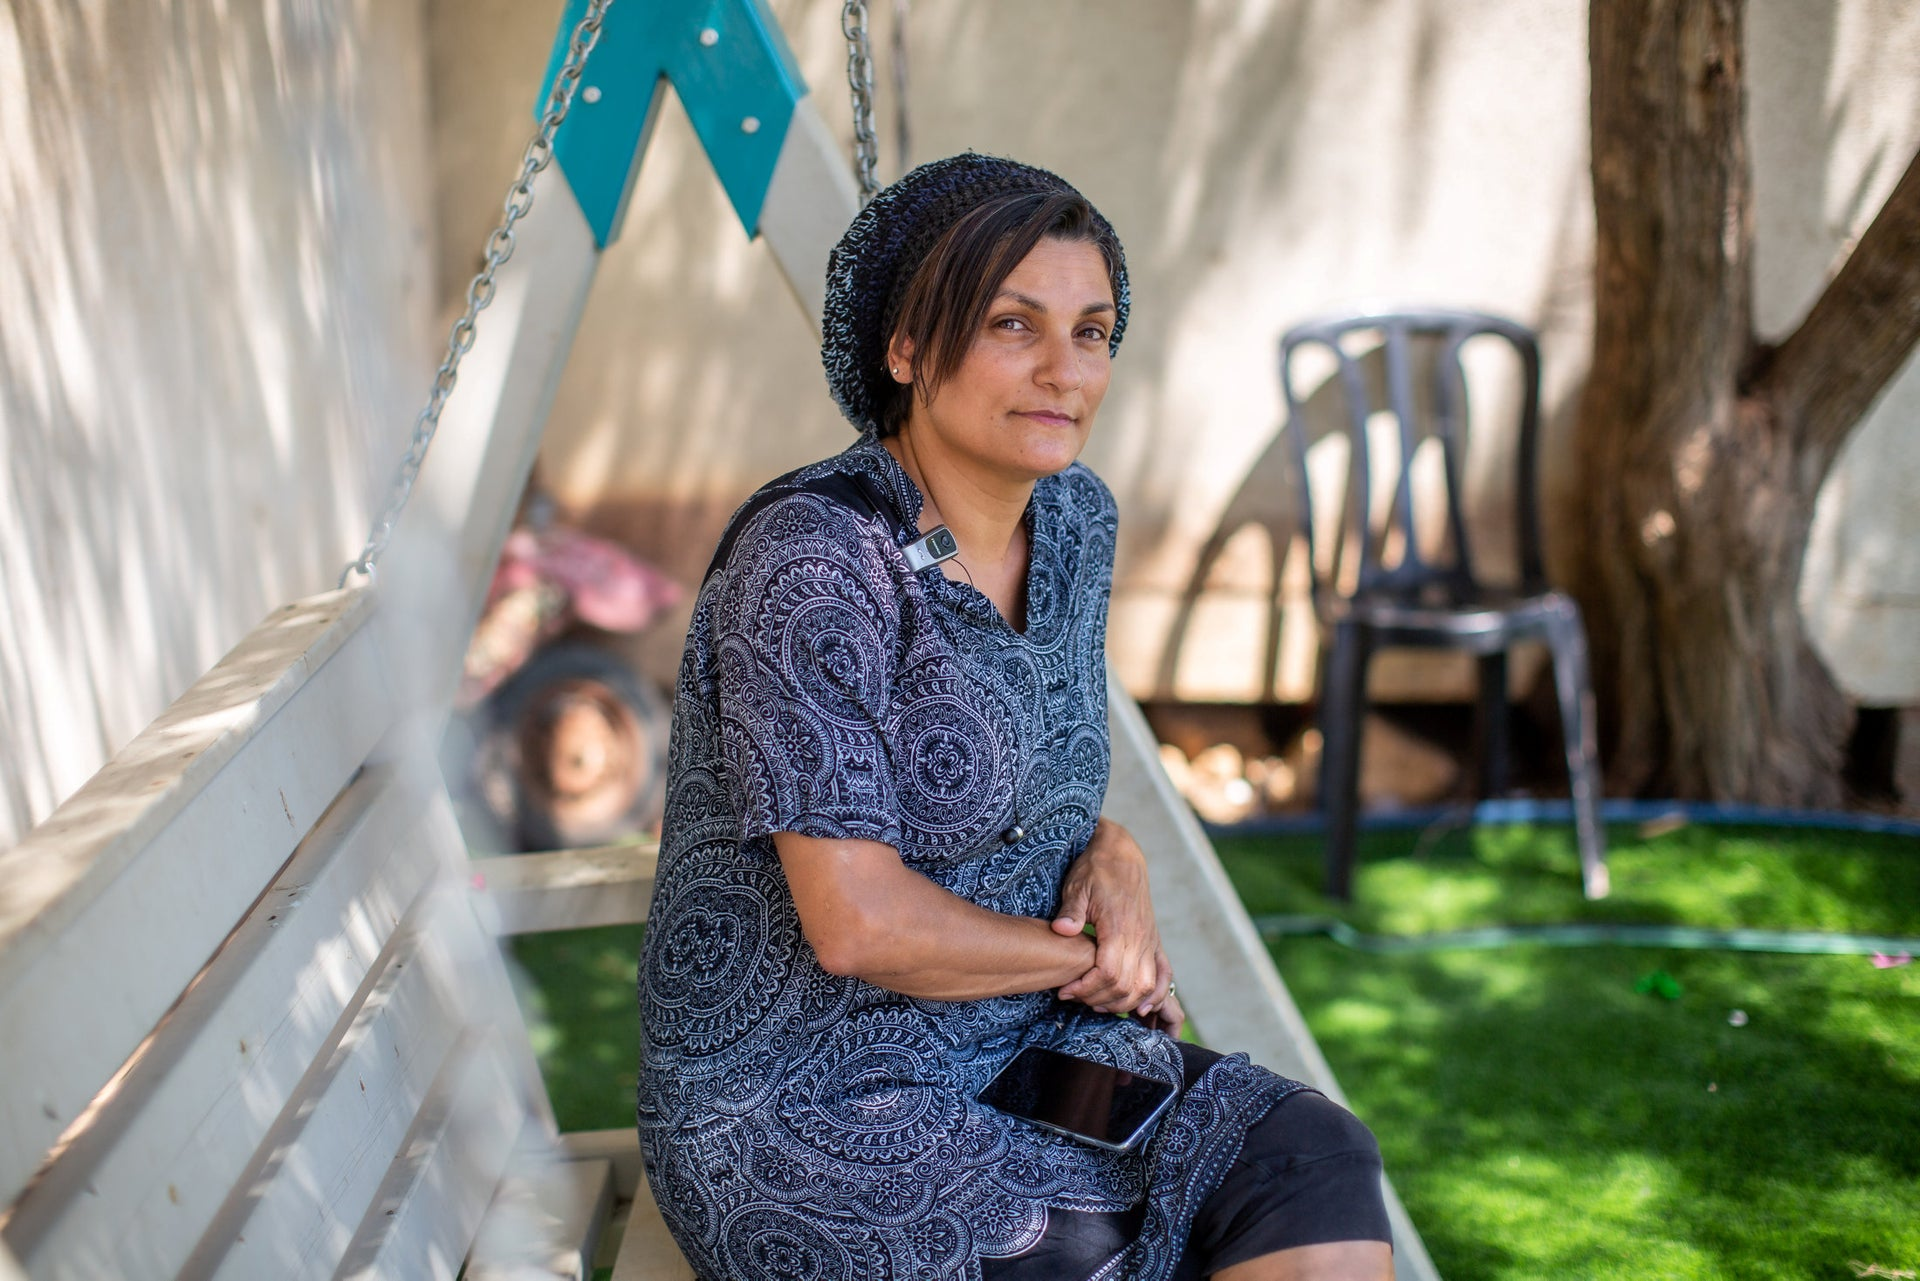 Ravit Marmelstein, the principal in the settlement of Psagot for a school students who have dropped out of school